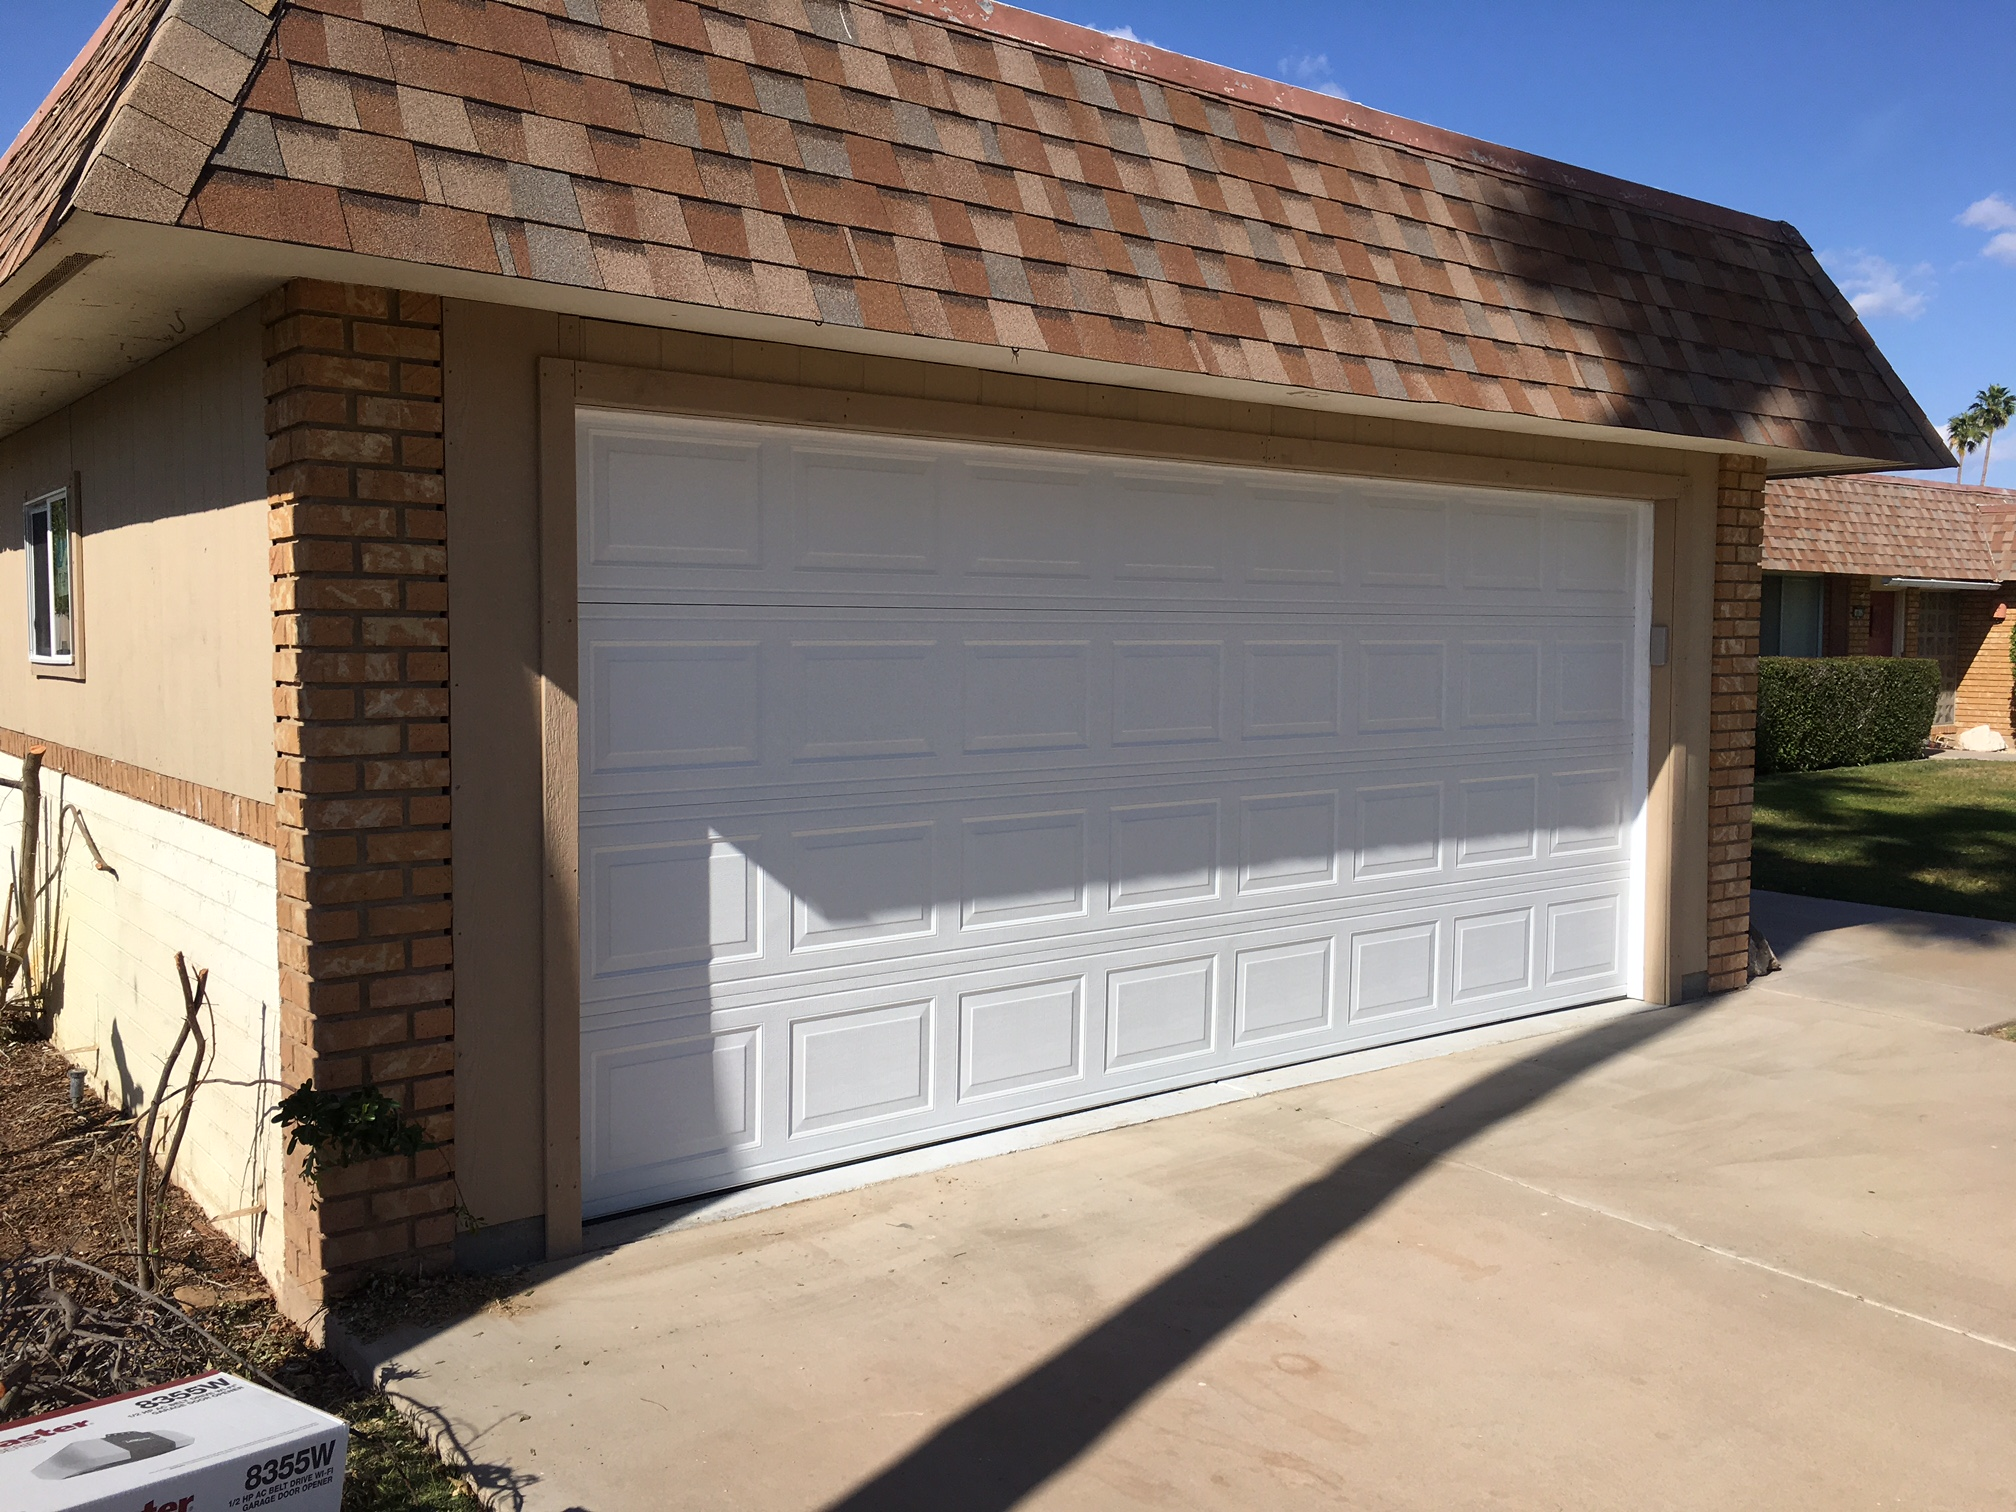 Carport-to-garage conversion: before & after photos